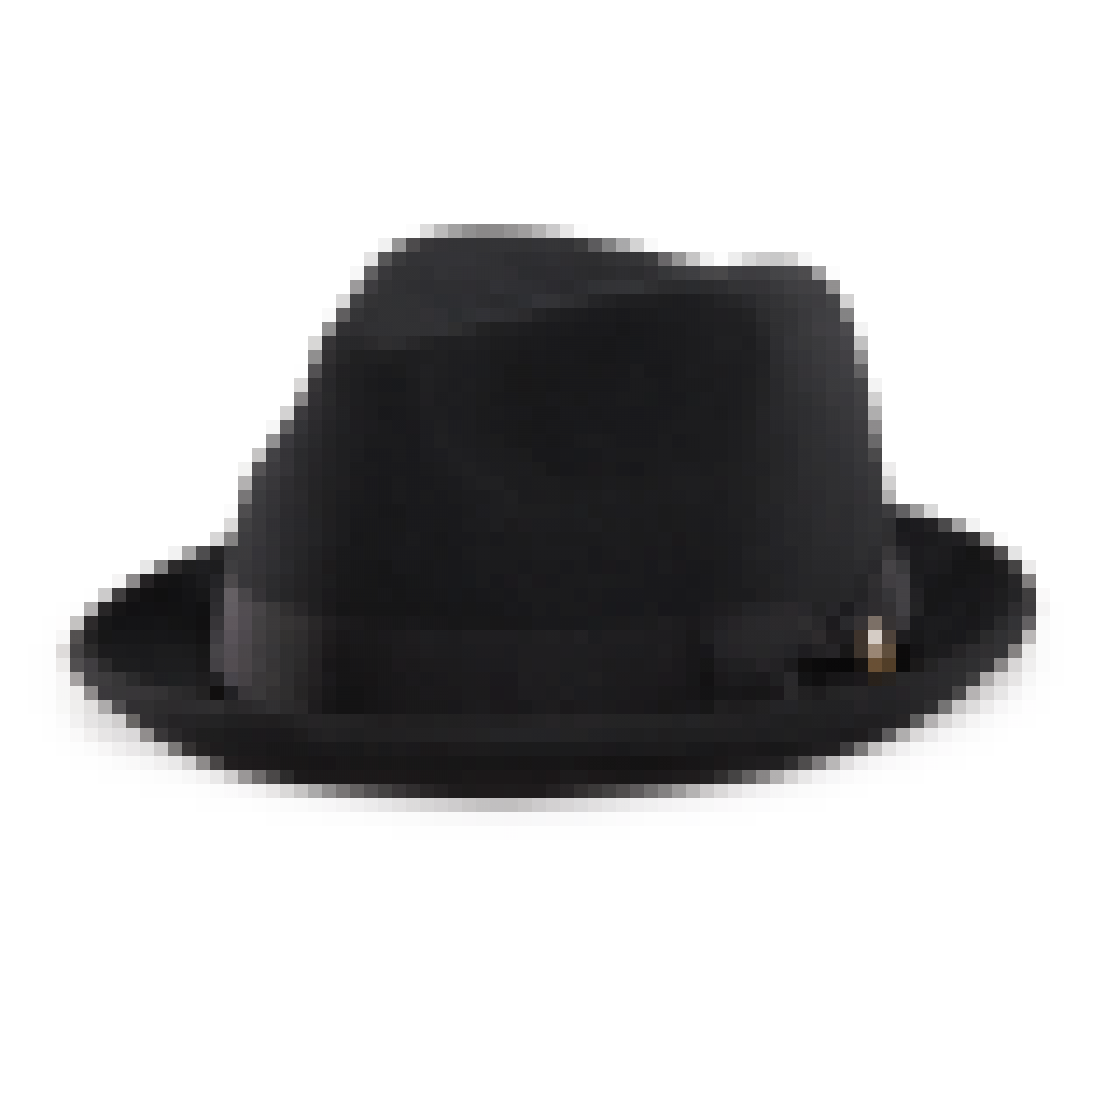 Good Boy Black felt Stingy Brim Fedora hat left side view - Fedora Hat PNG